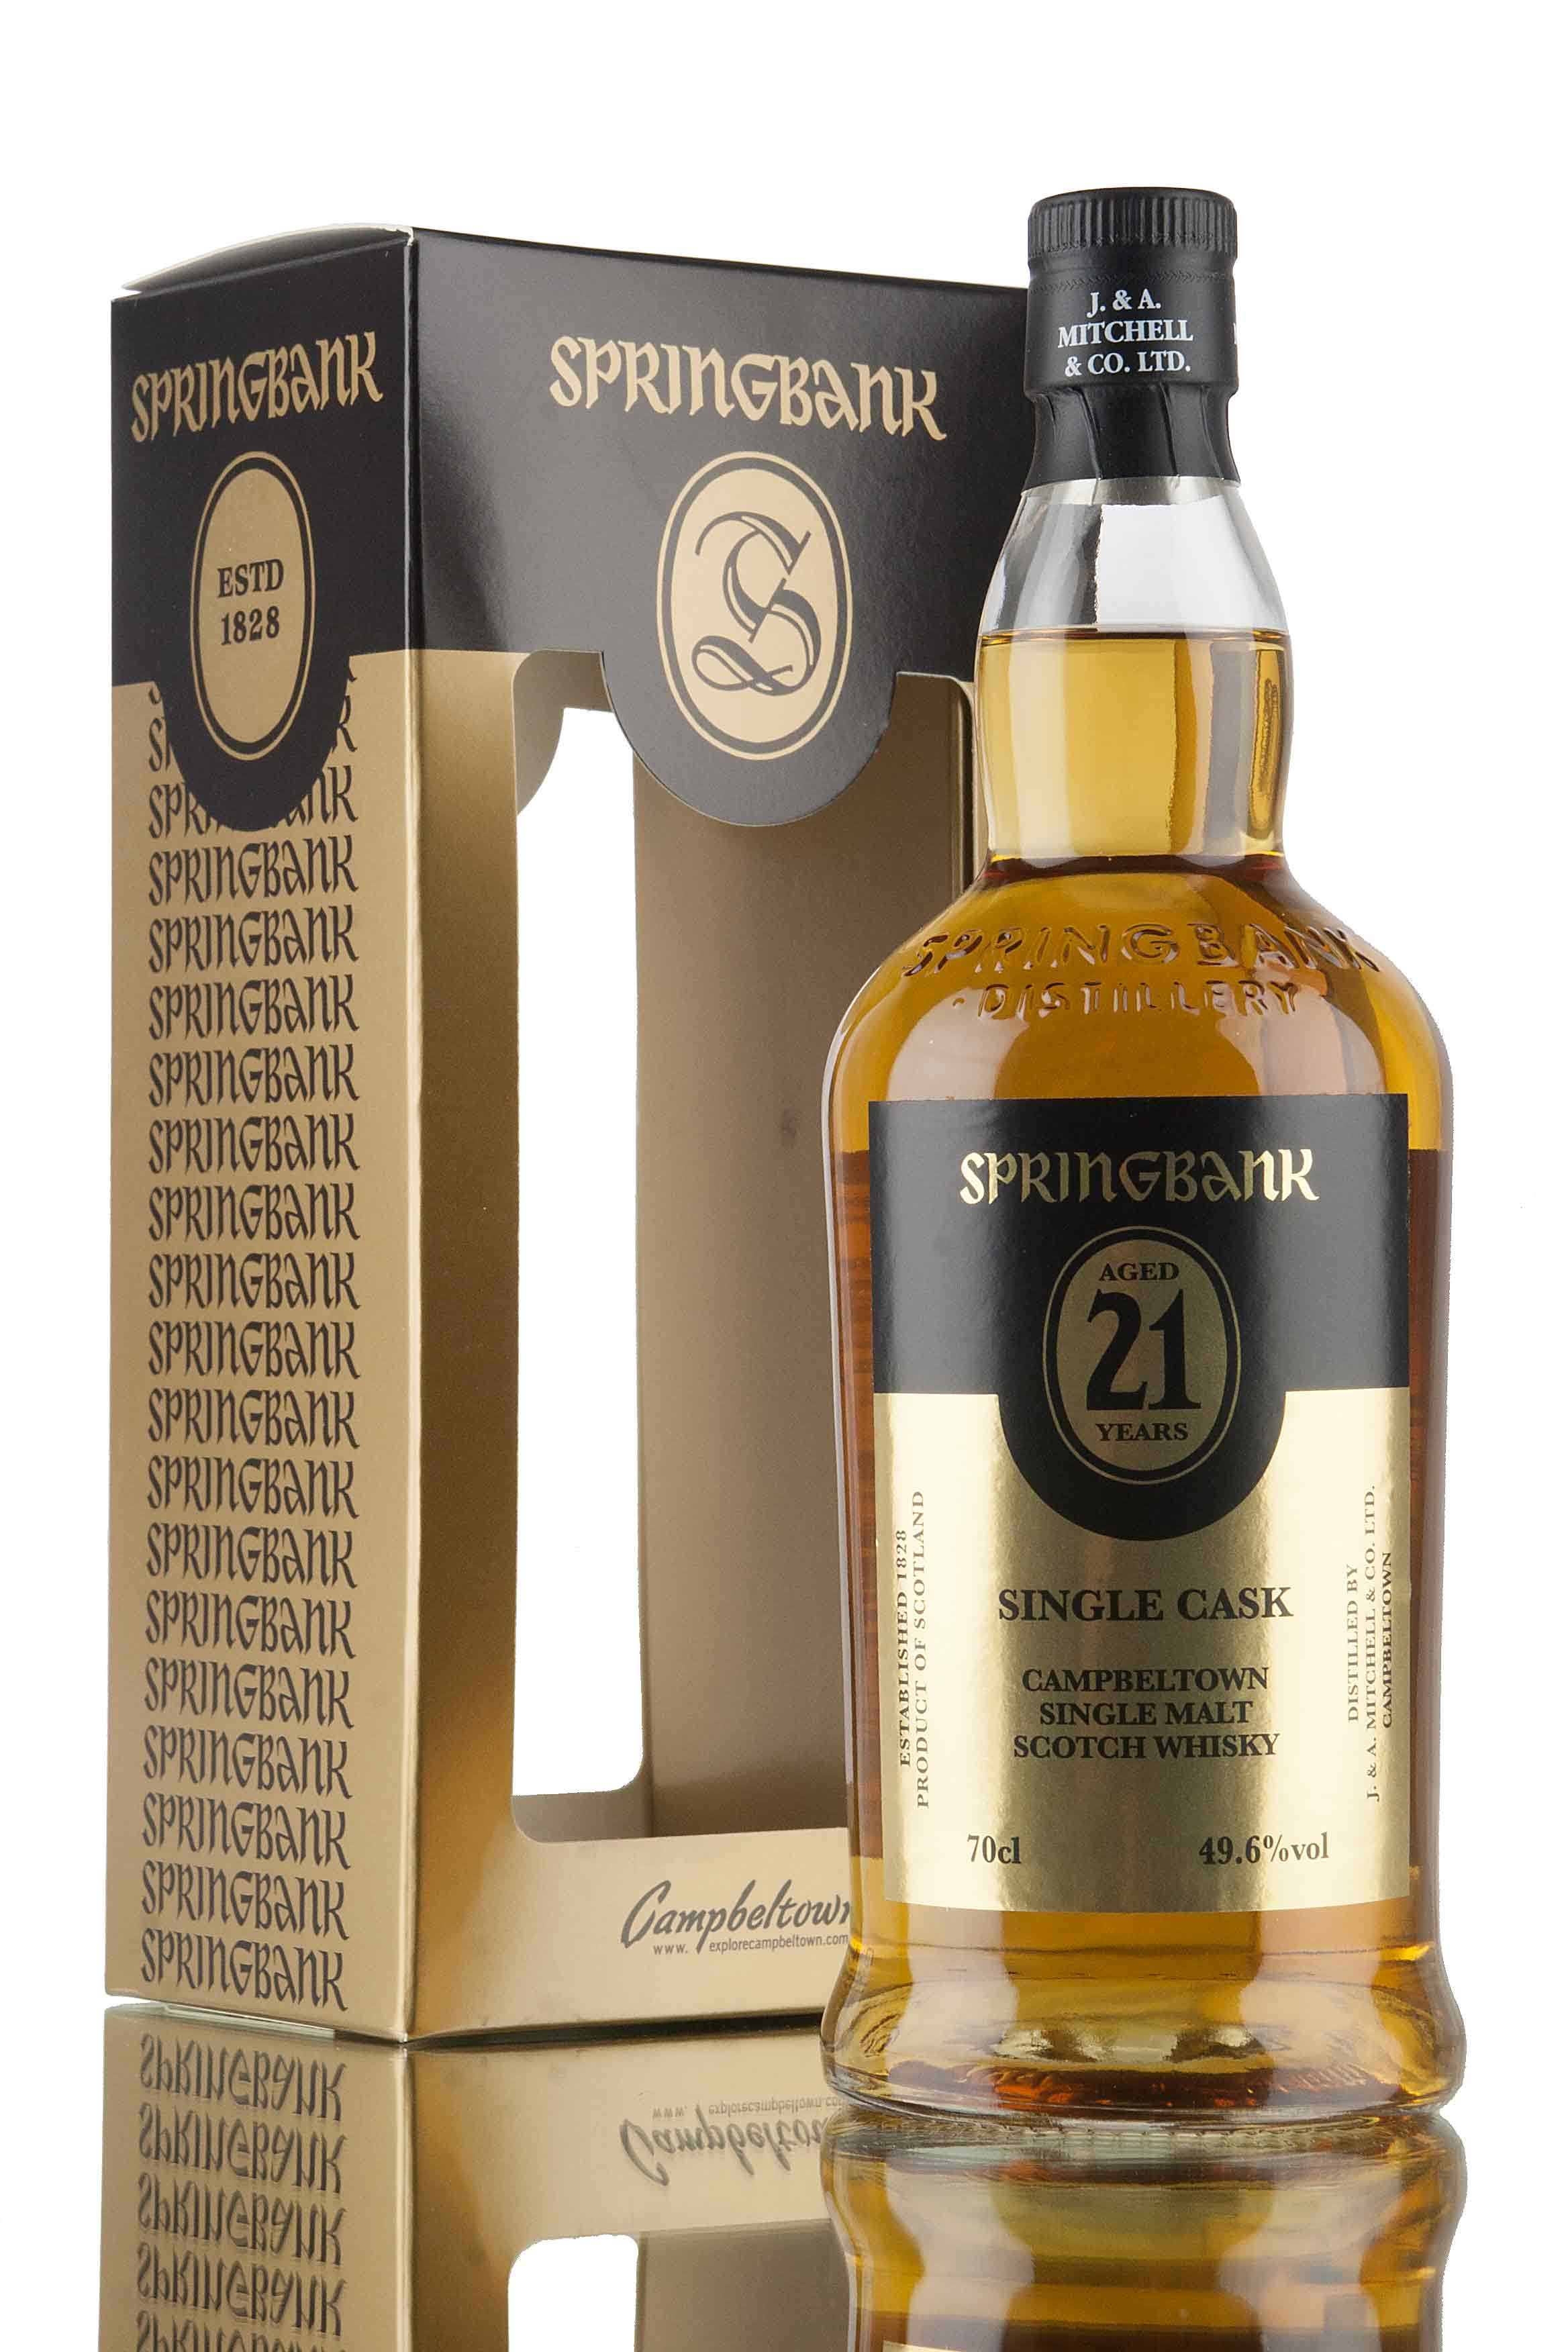 Springbank 21 Year Old Single Cask / 2016 Release